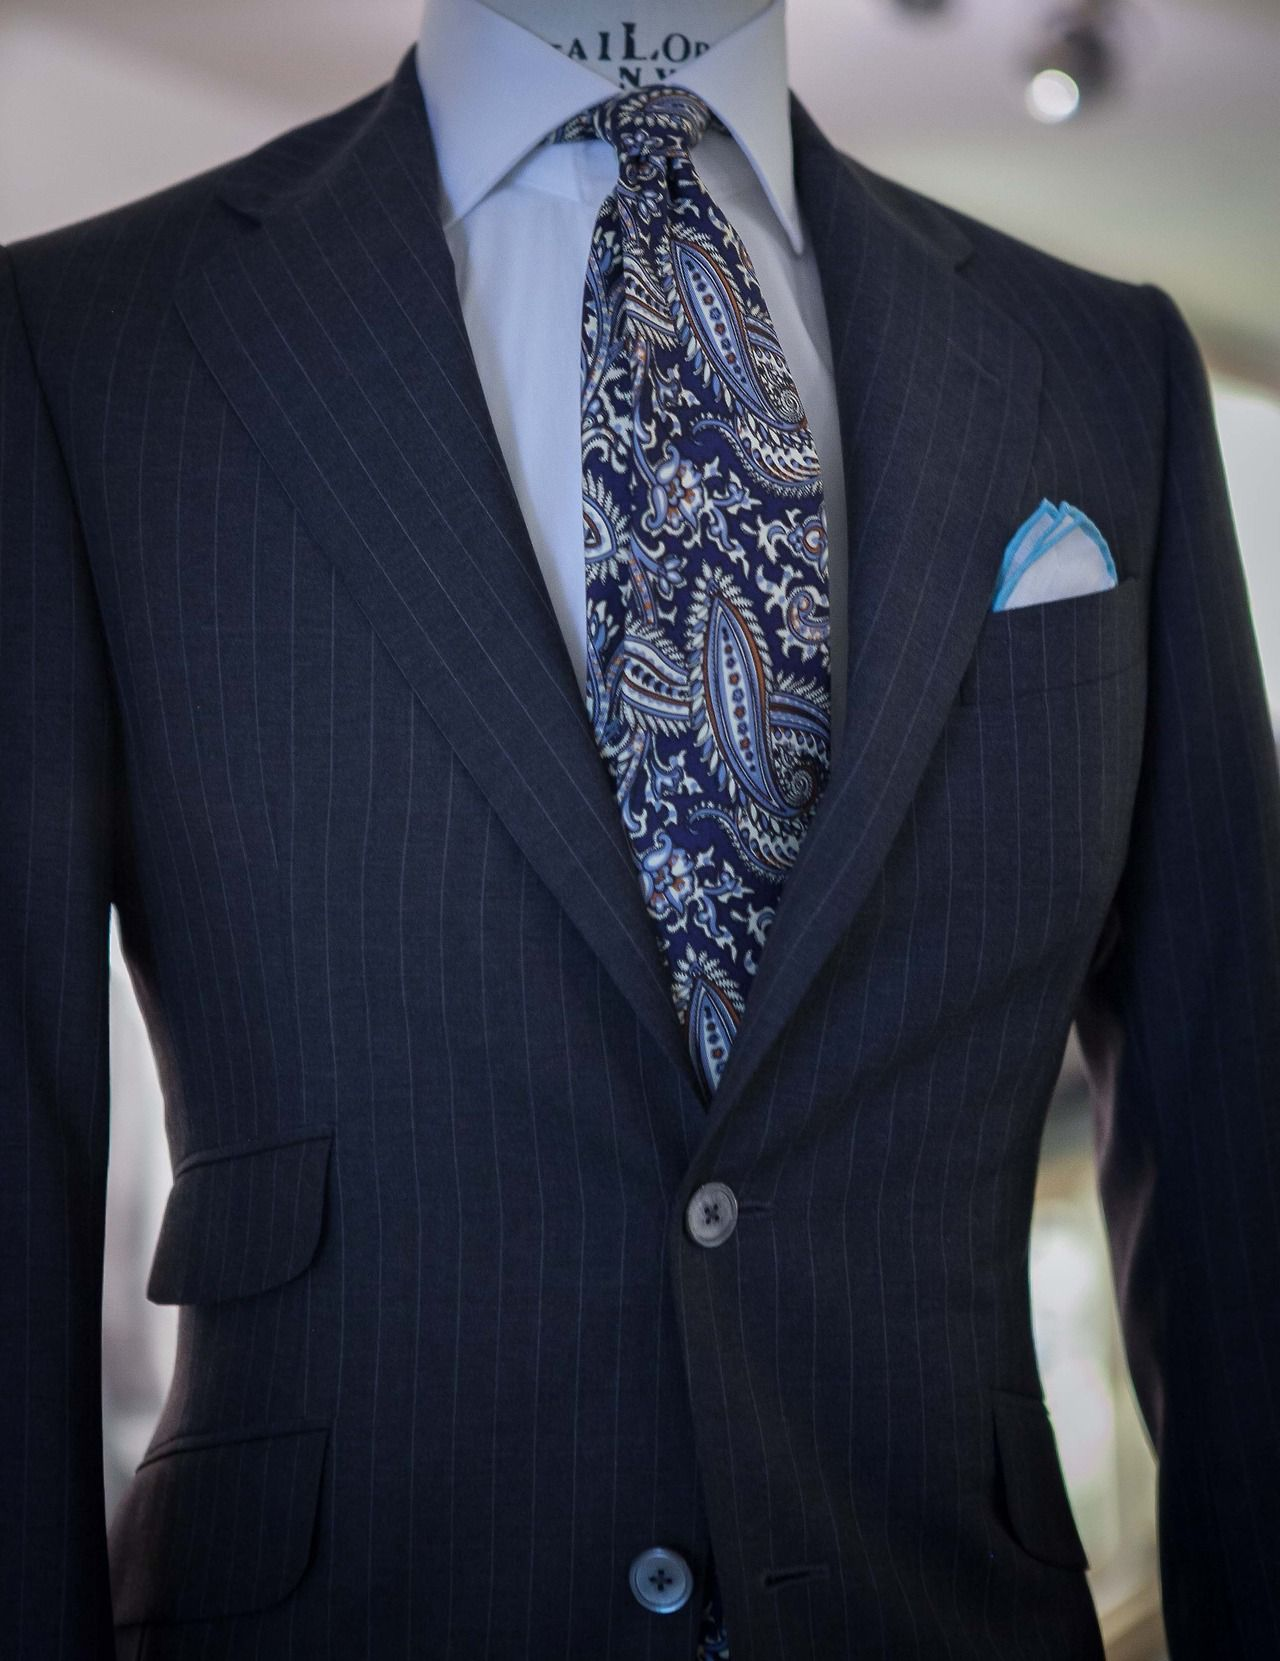 A Paisley Tie Always Gets Our Vote A Trendy Yet Classic